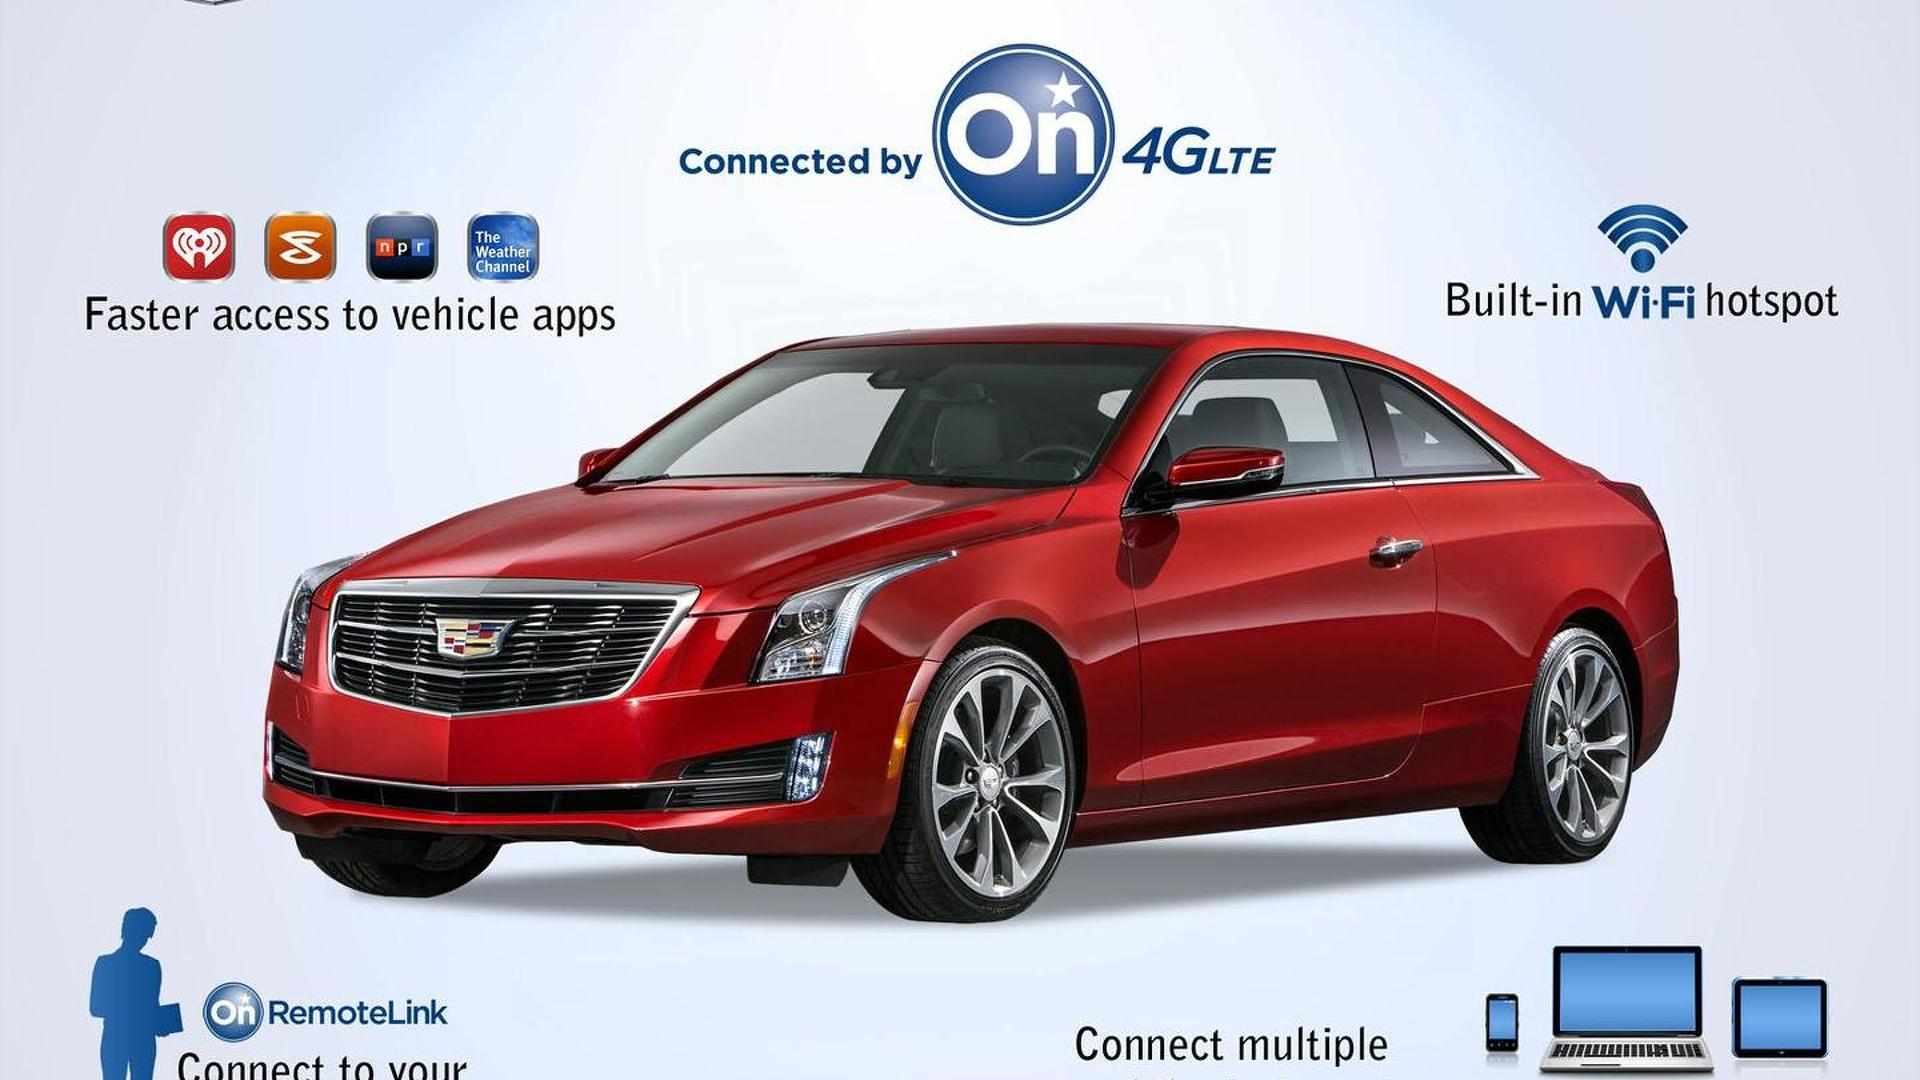 2015 Cadillac ATS Coupe to feature OnStar 4G LTE & CUE Apps